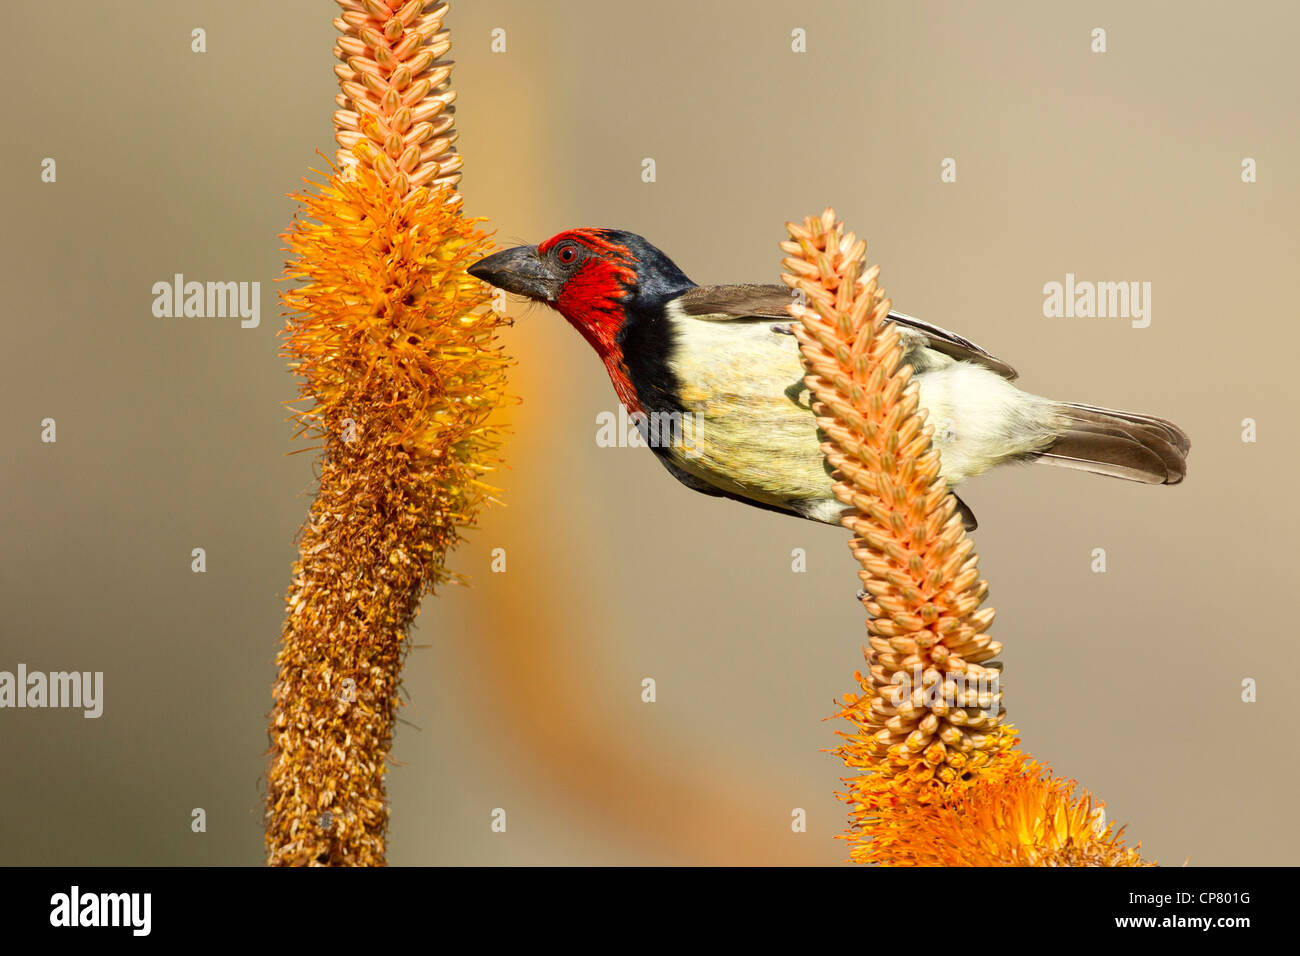 Black Collared Barbet (Lybius torquatus) feeding on the nectar of the Aloe Flowers, Kruger Park, South Africa - Stock Image